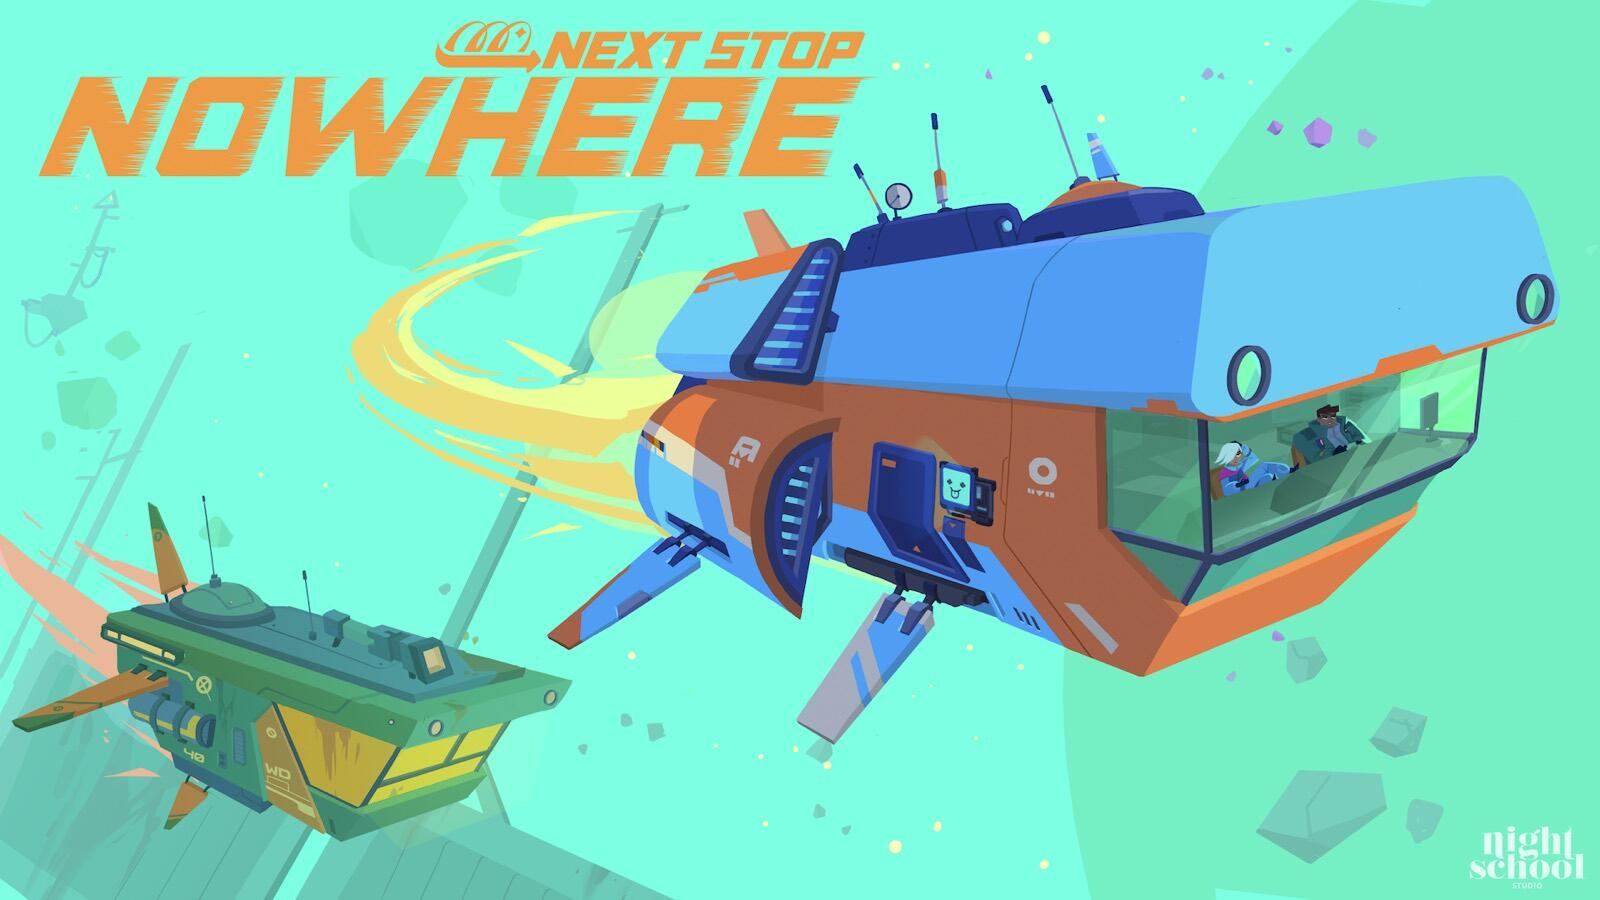 Apple Arcade's Next Stop Nowhere takes you on an intergalactic road trip